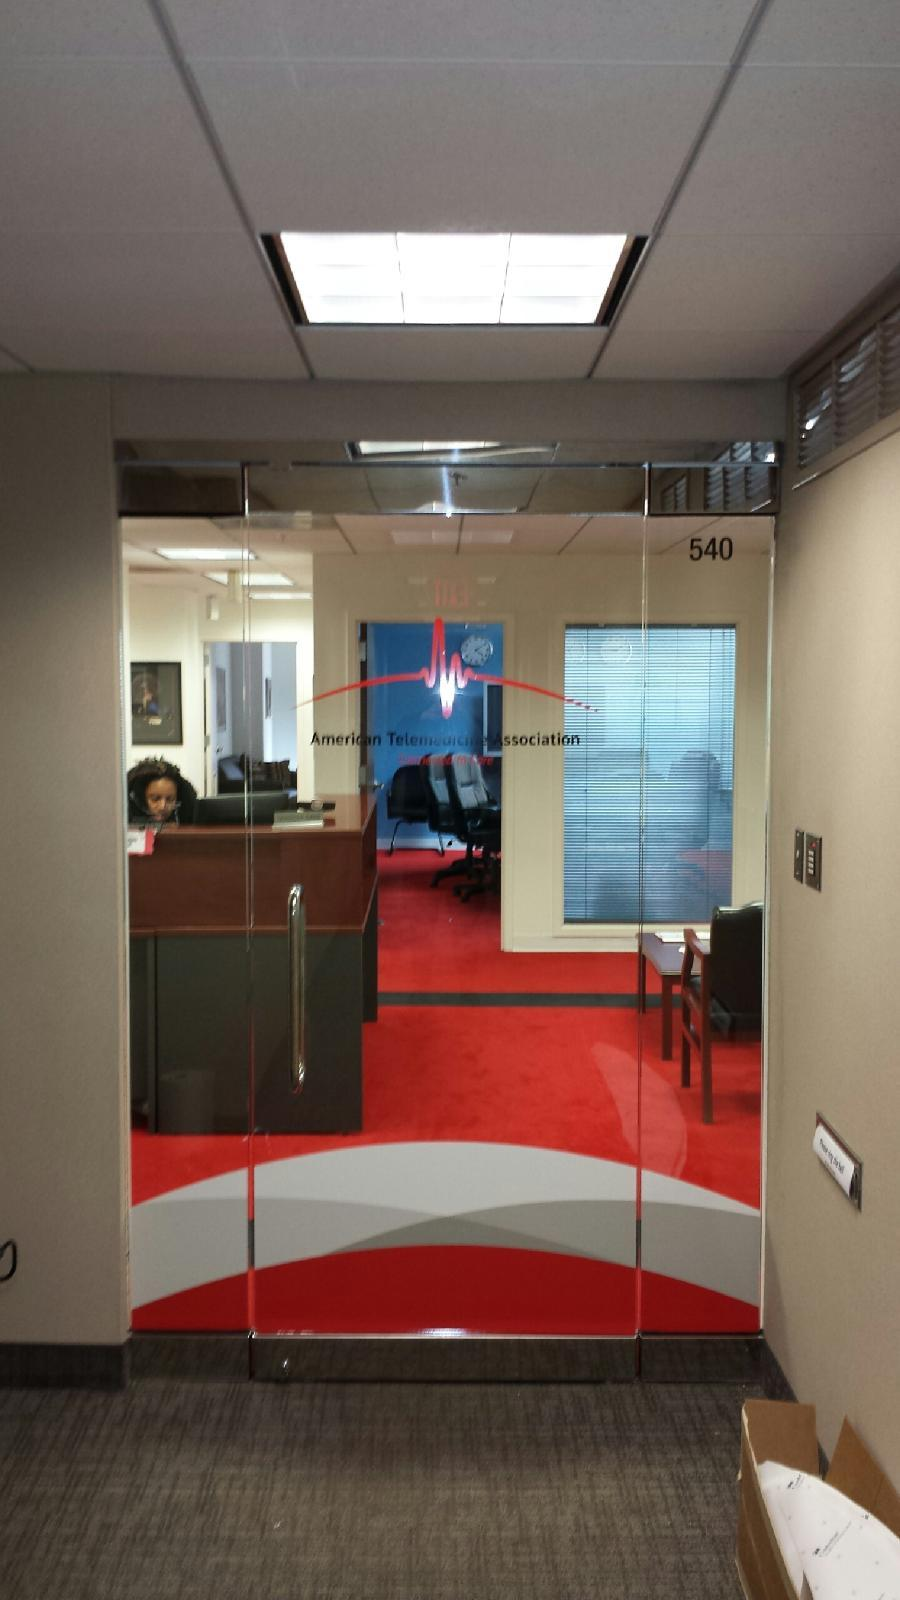 American Telemedicine Window Graphics